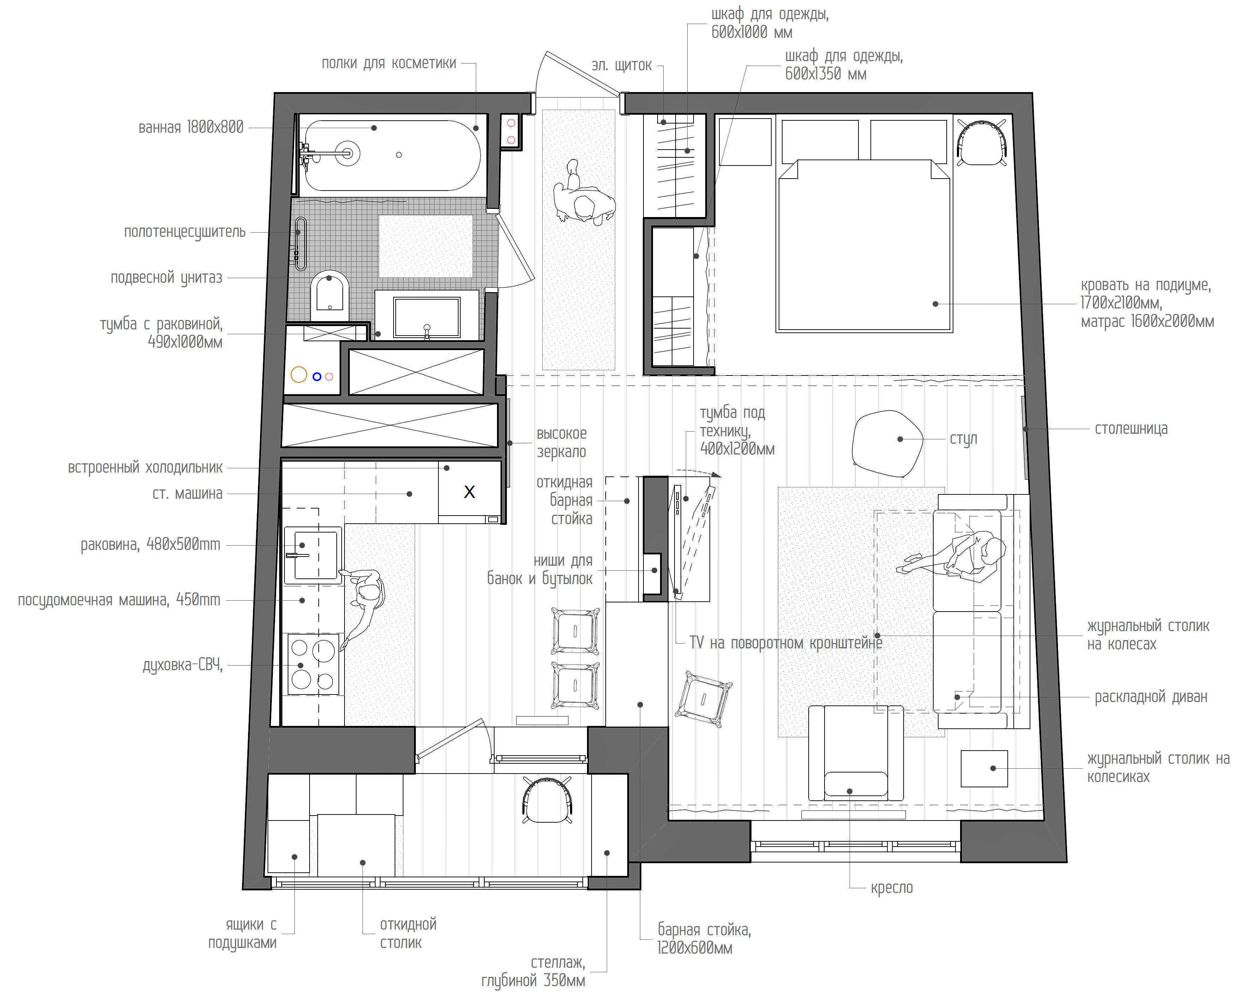 fun 45 square meter apartment with a crossword puzzle on the rh pinterest com mx